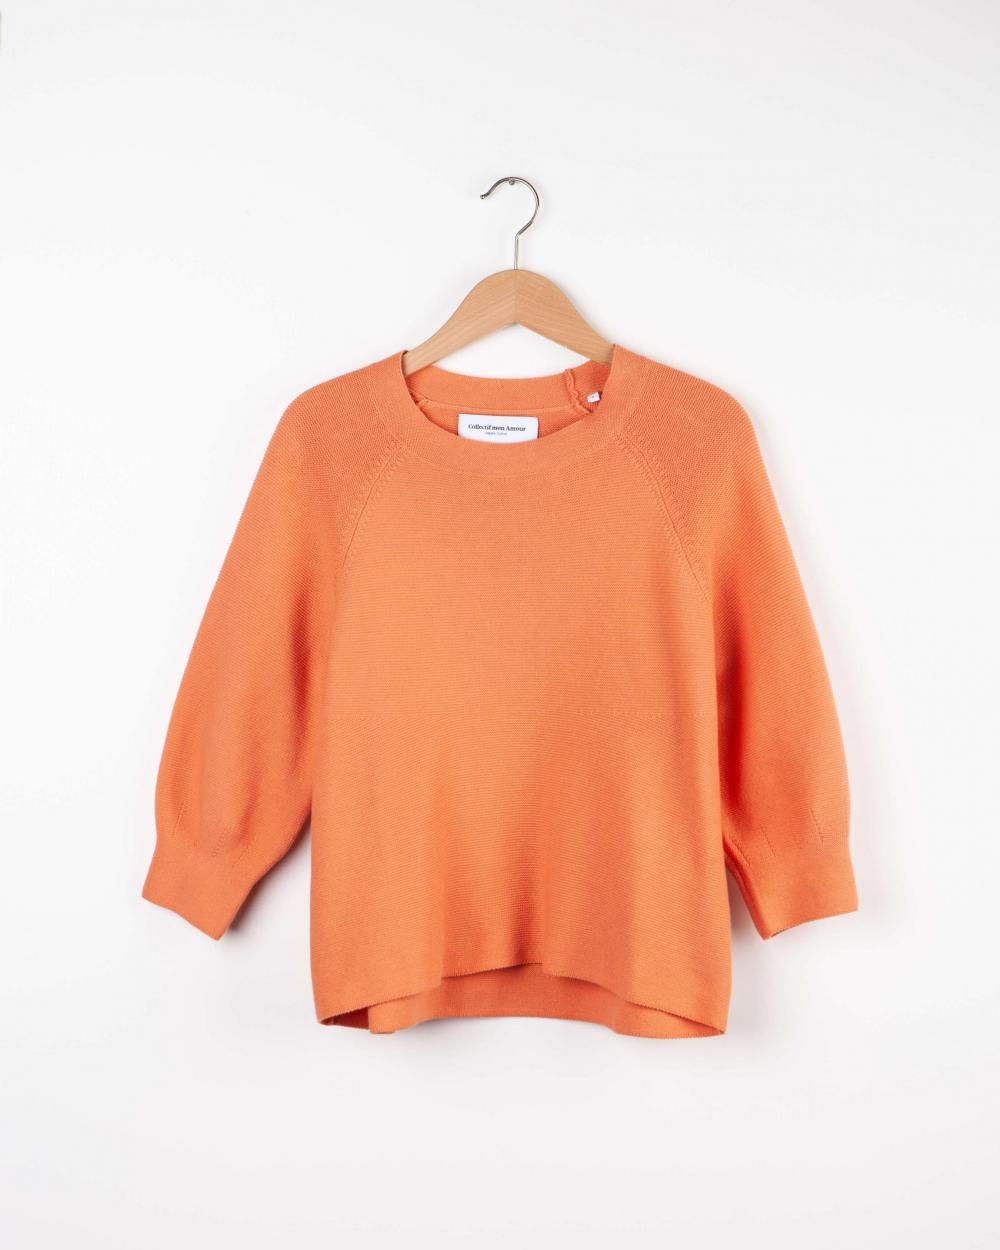 3-4-arm-pullover-cayenne-melone-213-1-4314396d